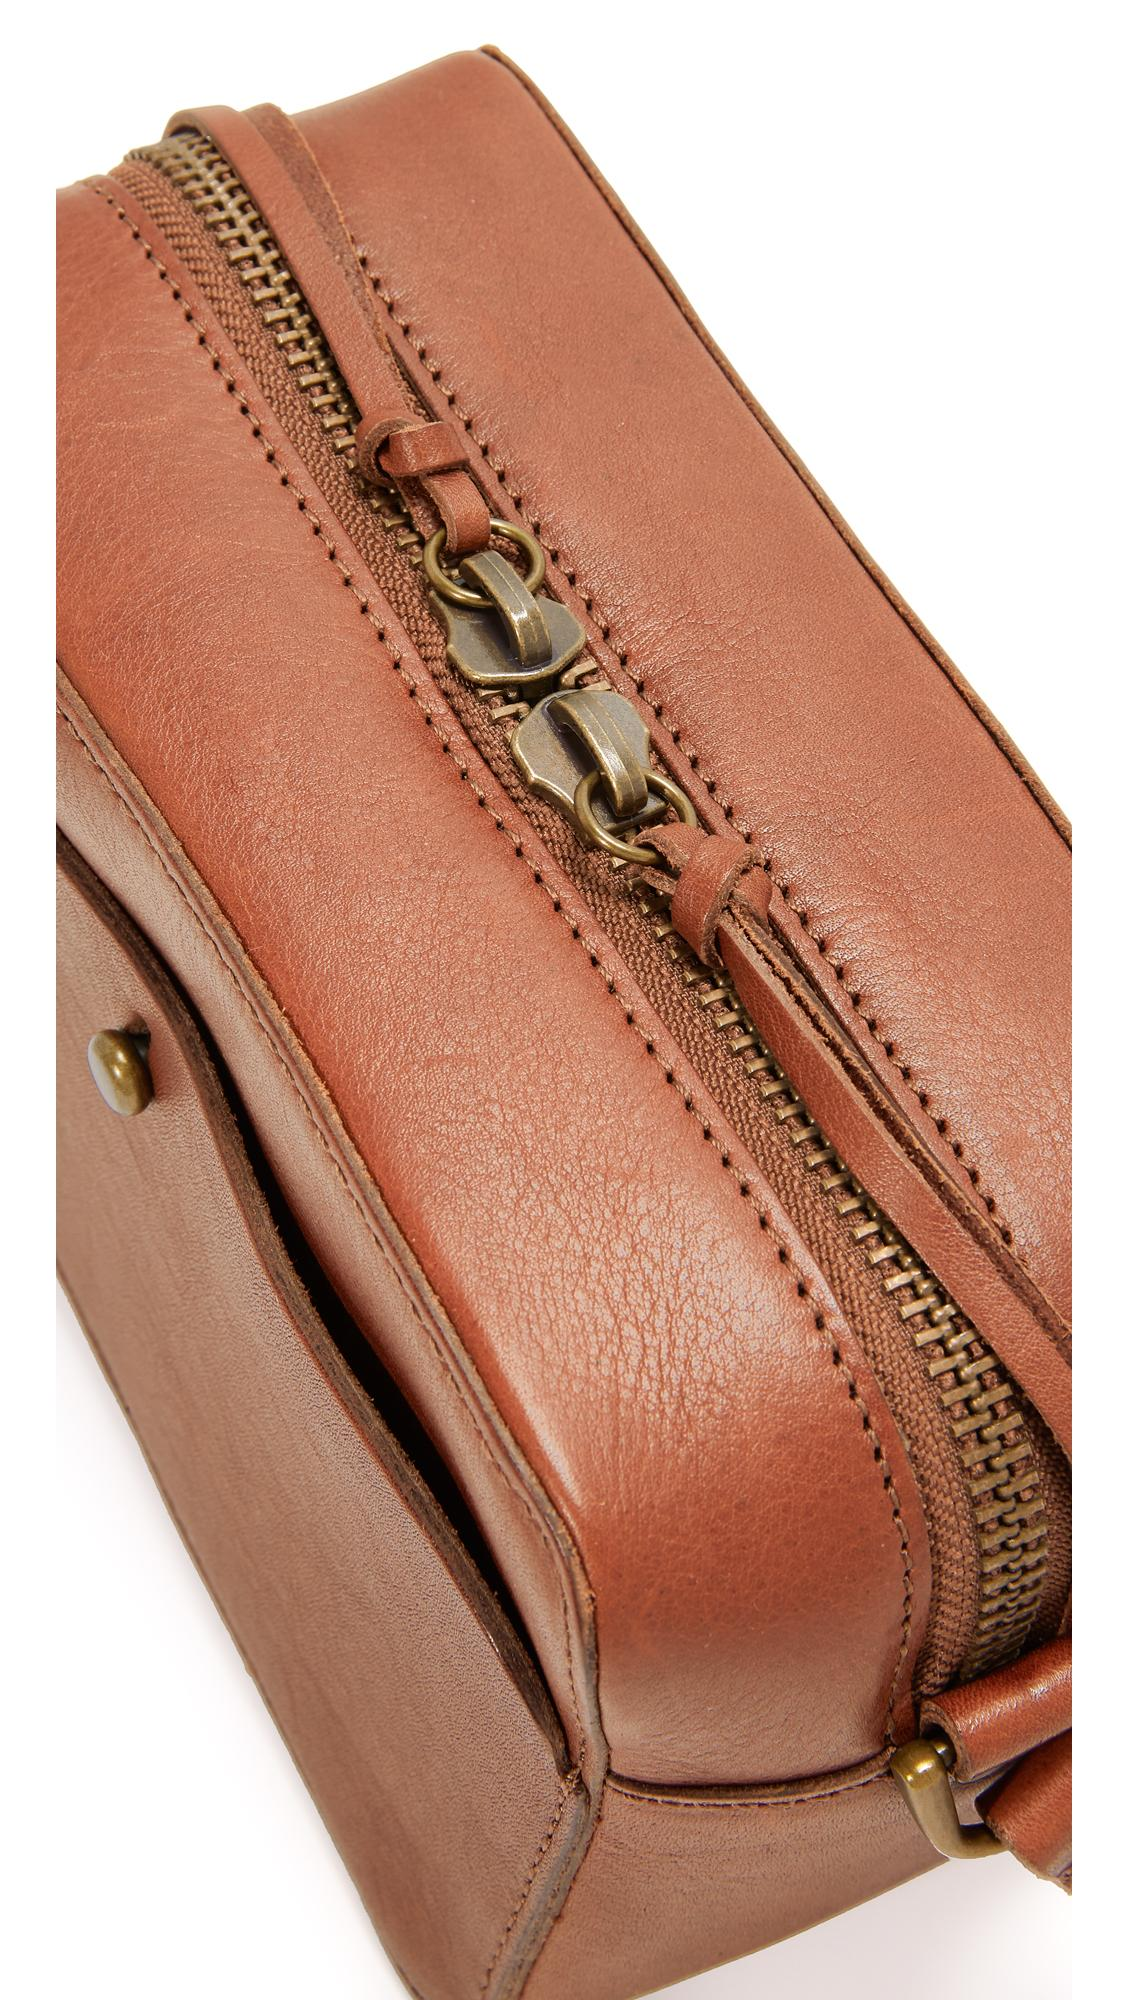 Madewell Leather Camera Cross Body Bag in Brown